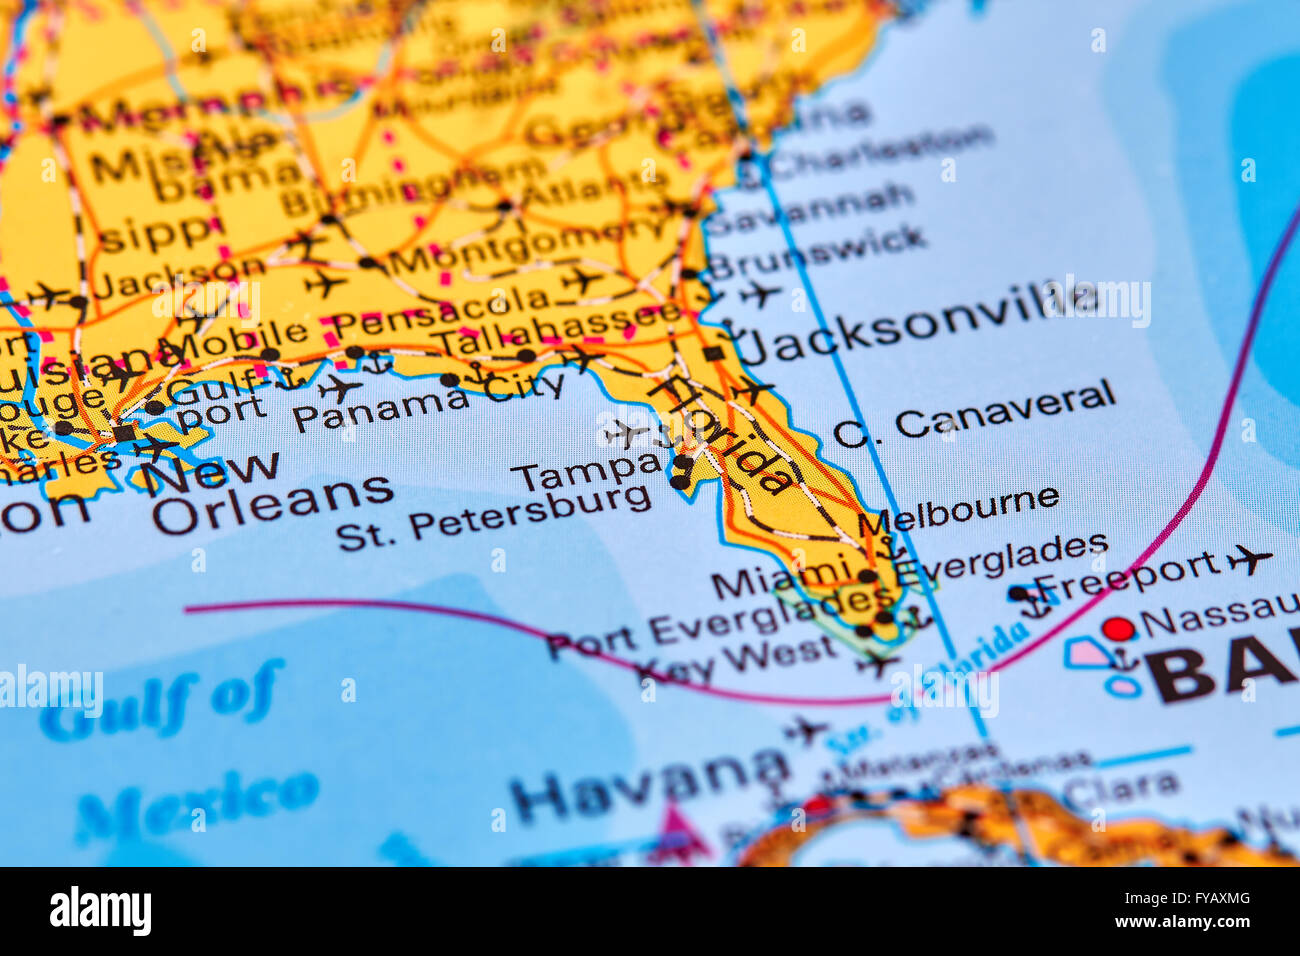 florida map stockfotos & florida map bilder - alamy